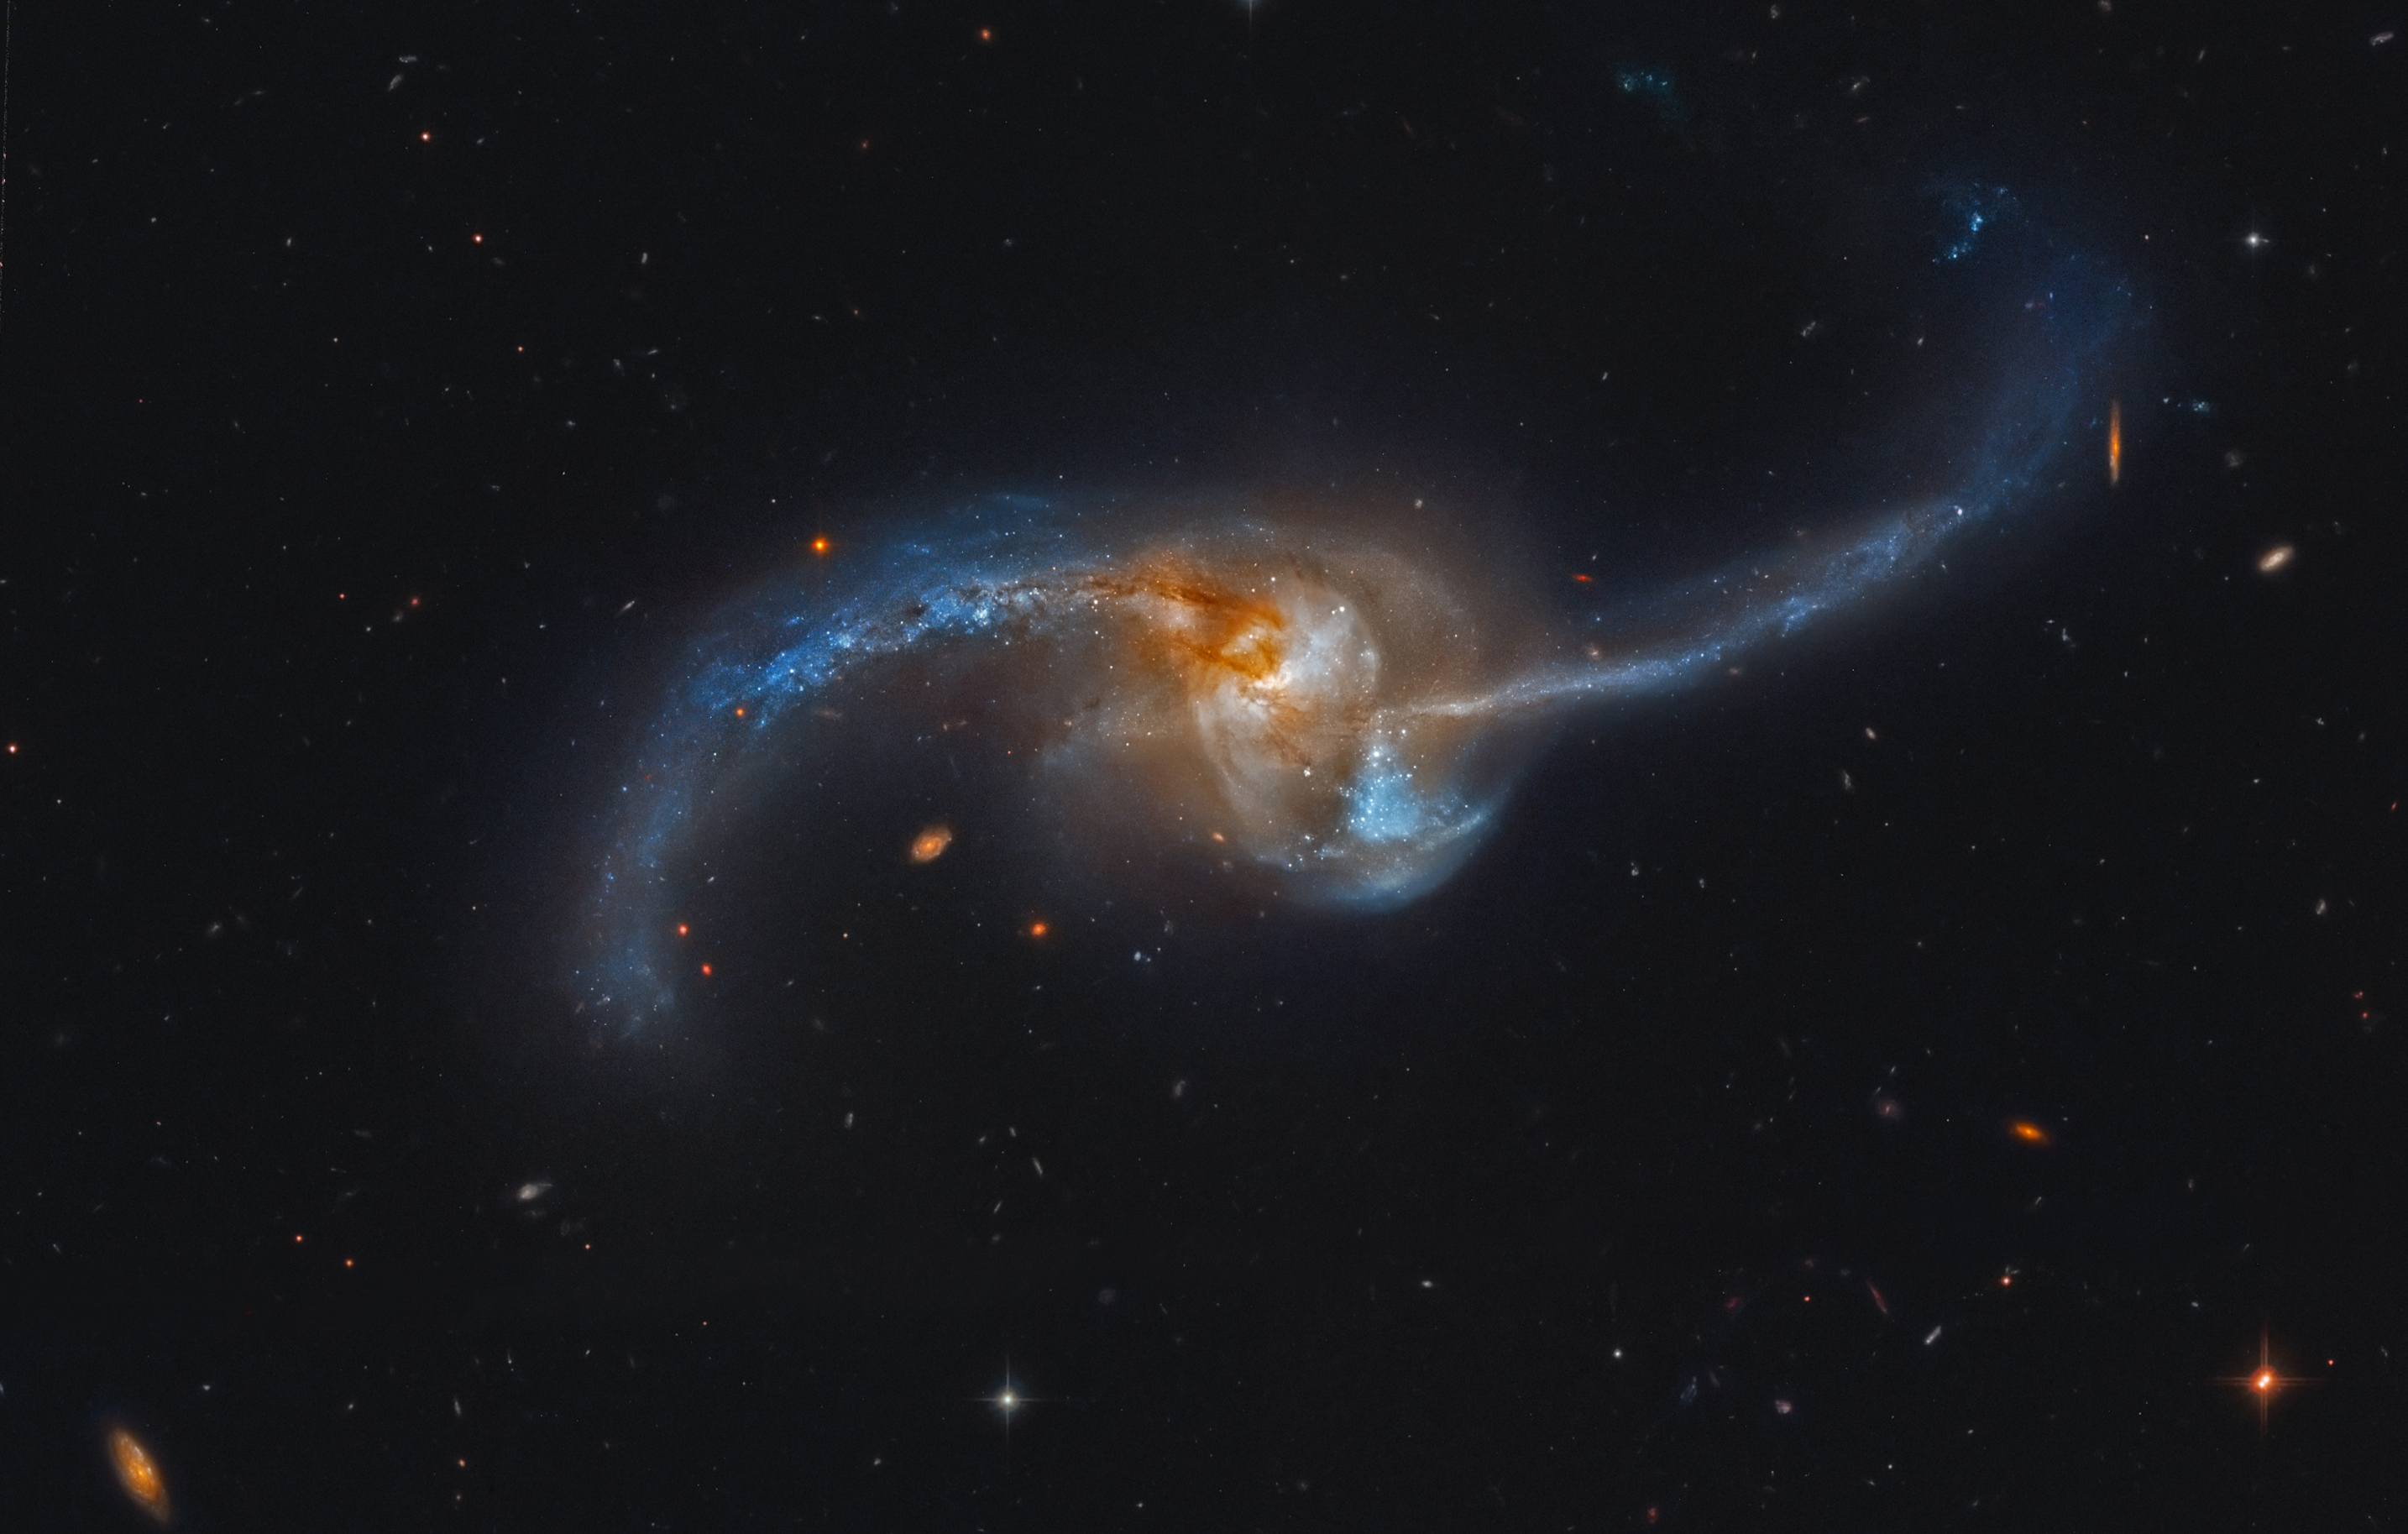 Late stage merging galaxies discredits black holes and for Immagini galassie hd